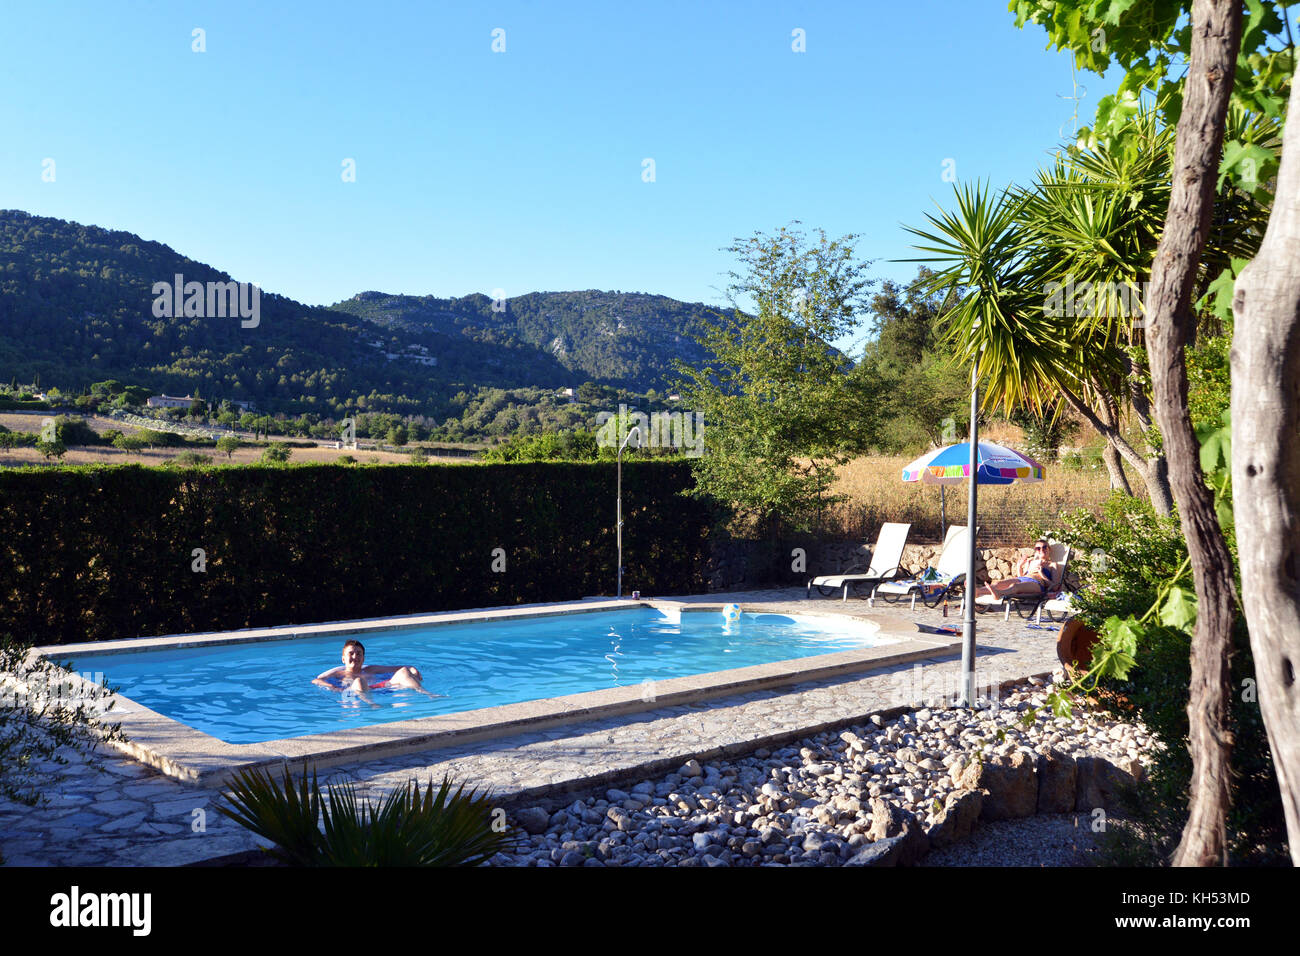 Idyllic Holiday villa with swimming pool on the Island of Mallorca Spain - Stock Image